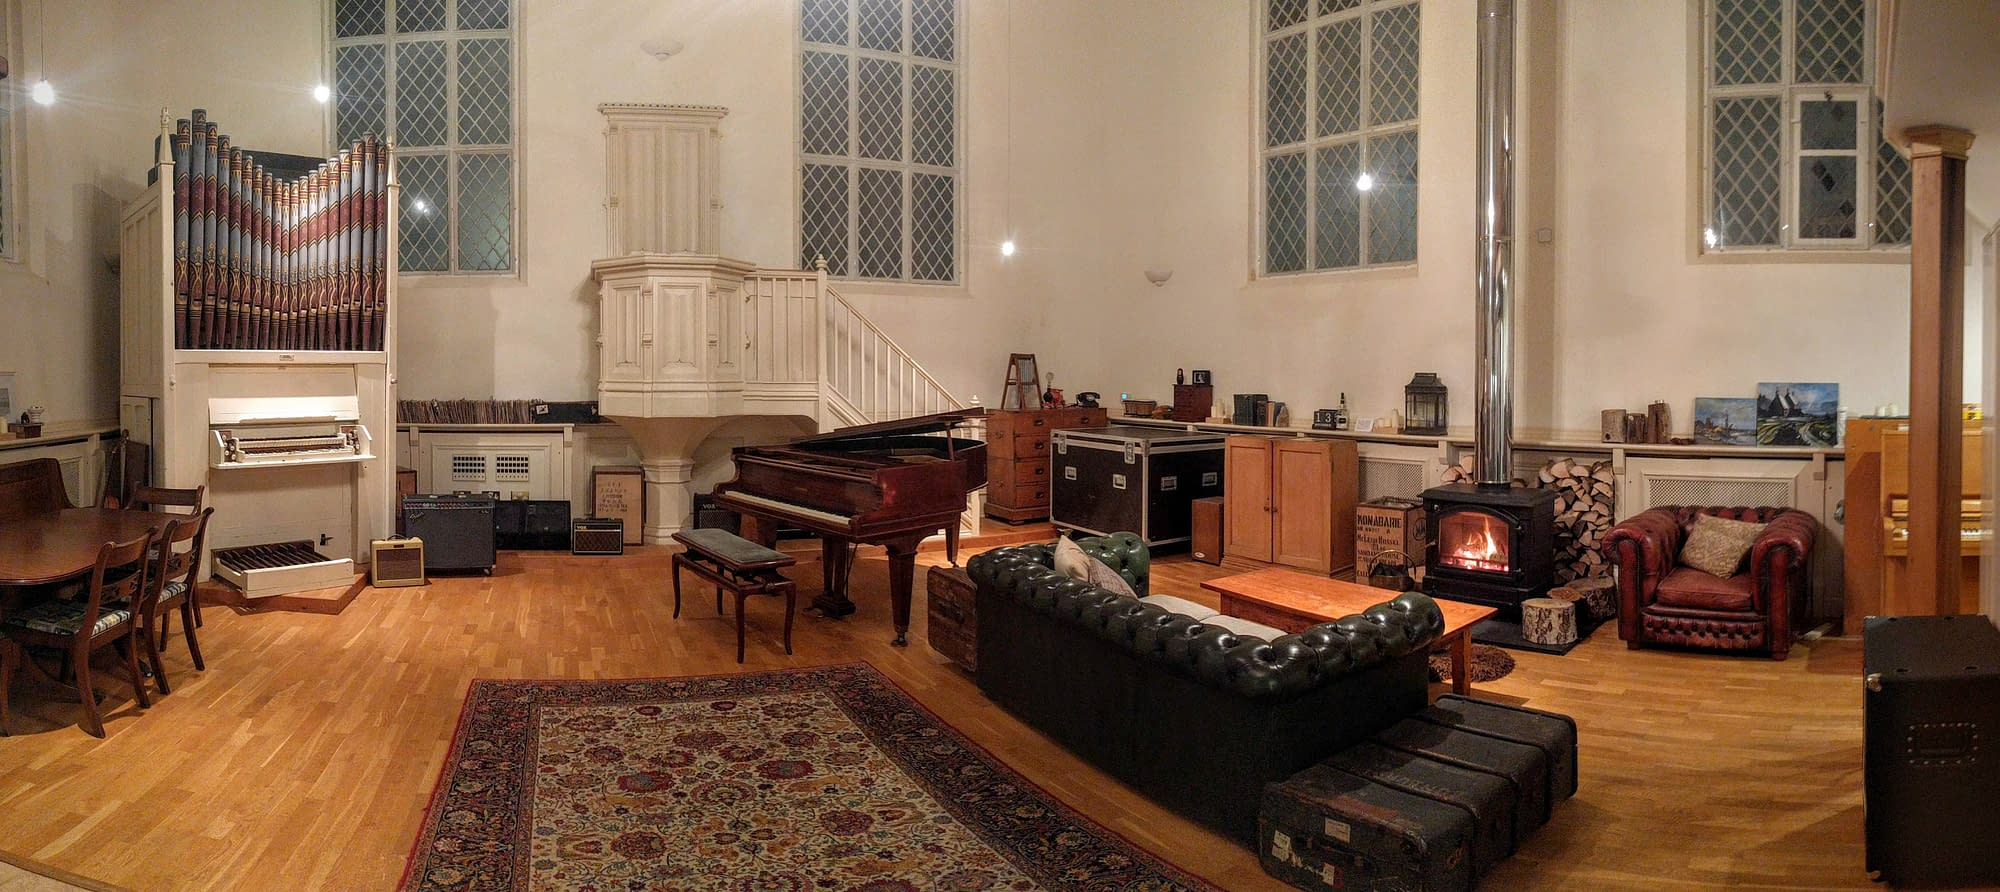 Grand Chapel Studios - Main Room - Fireplace, Organ, Grand Piano